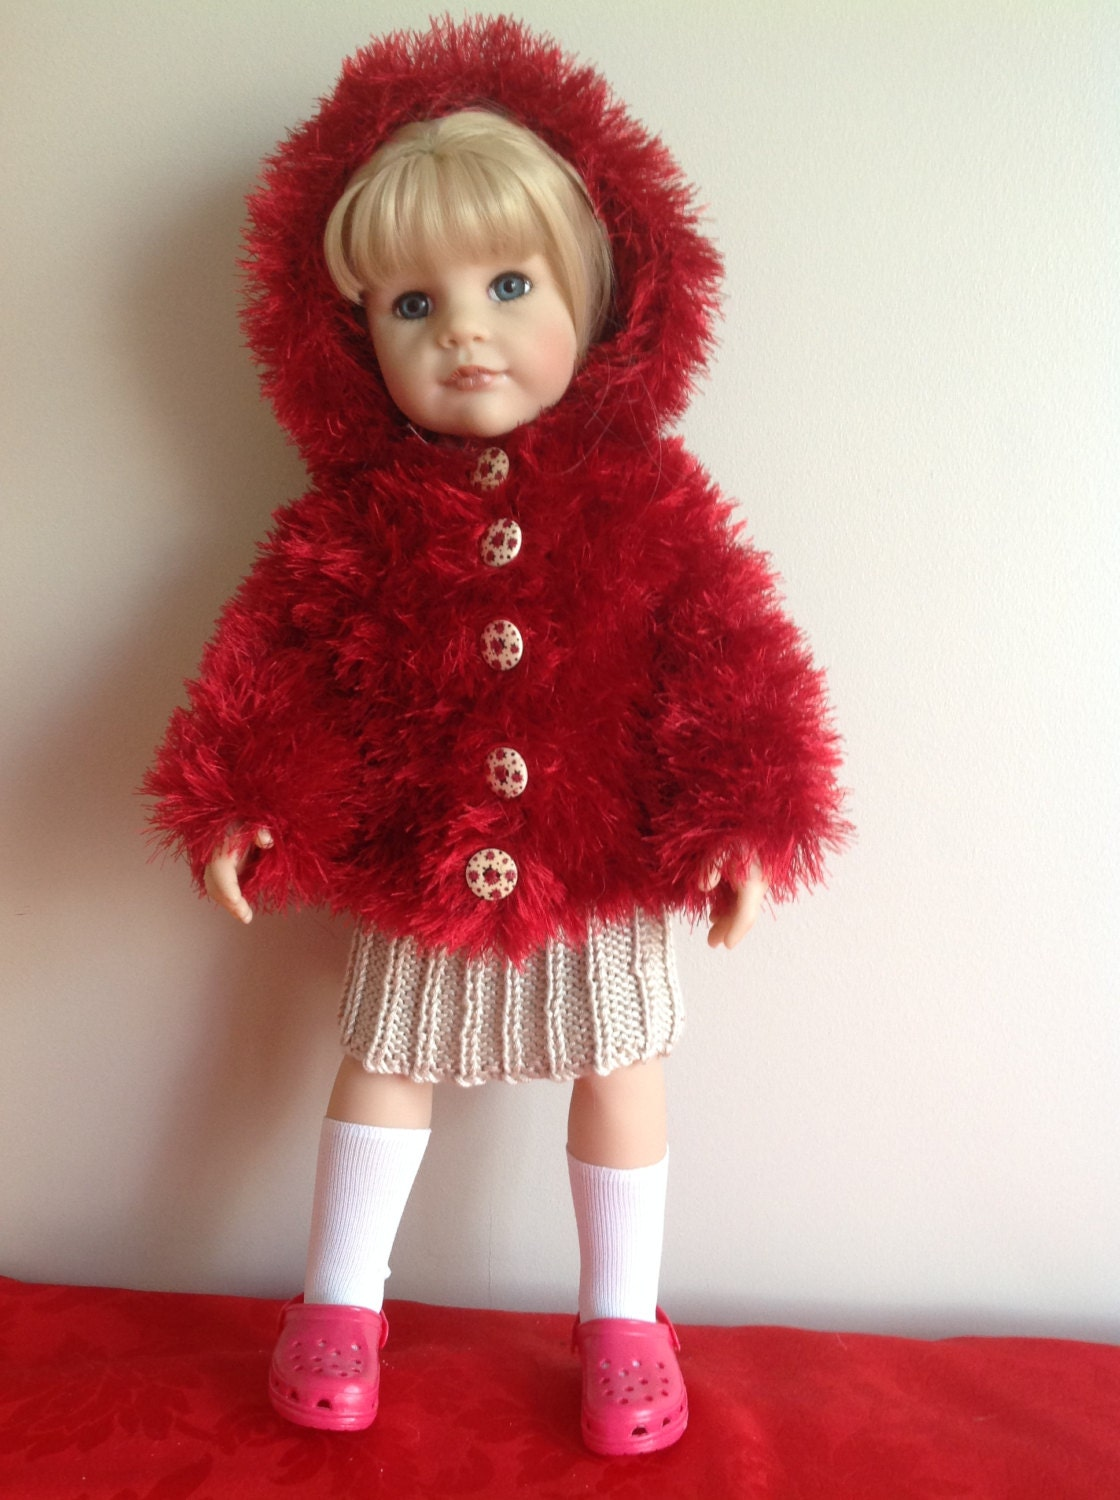 Knitting Clothes For Dolls : Dolls fashion clothes knitting pattern to fit or